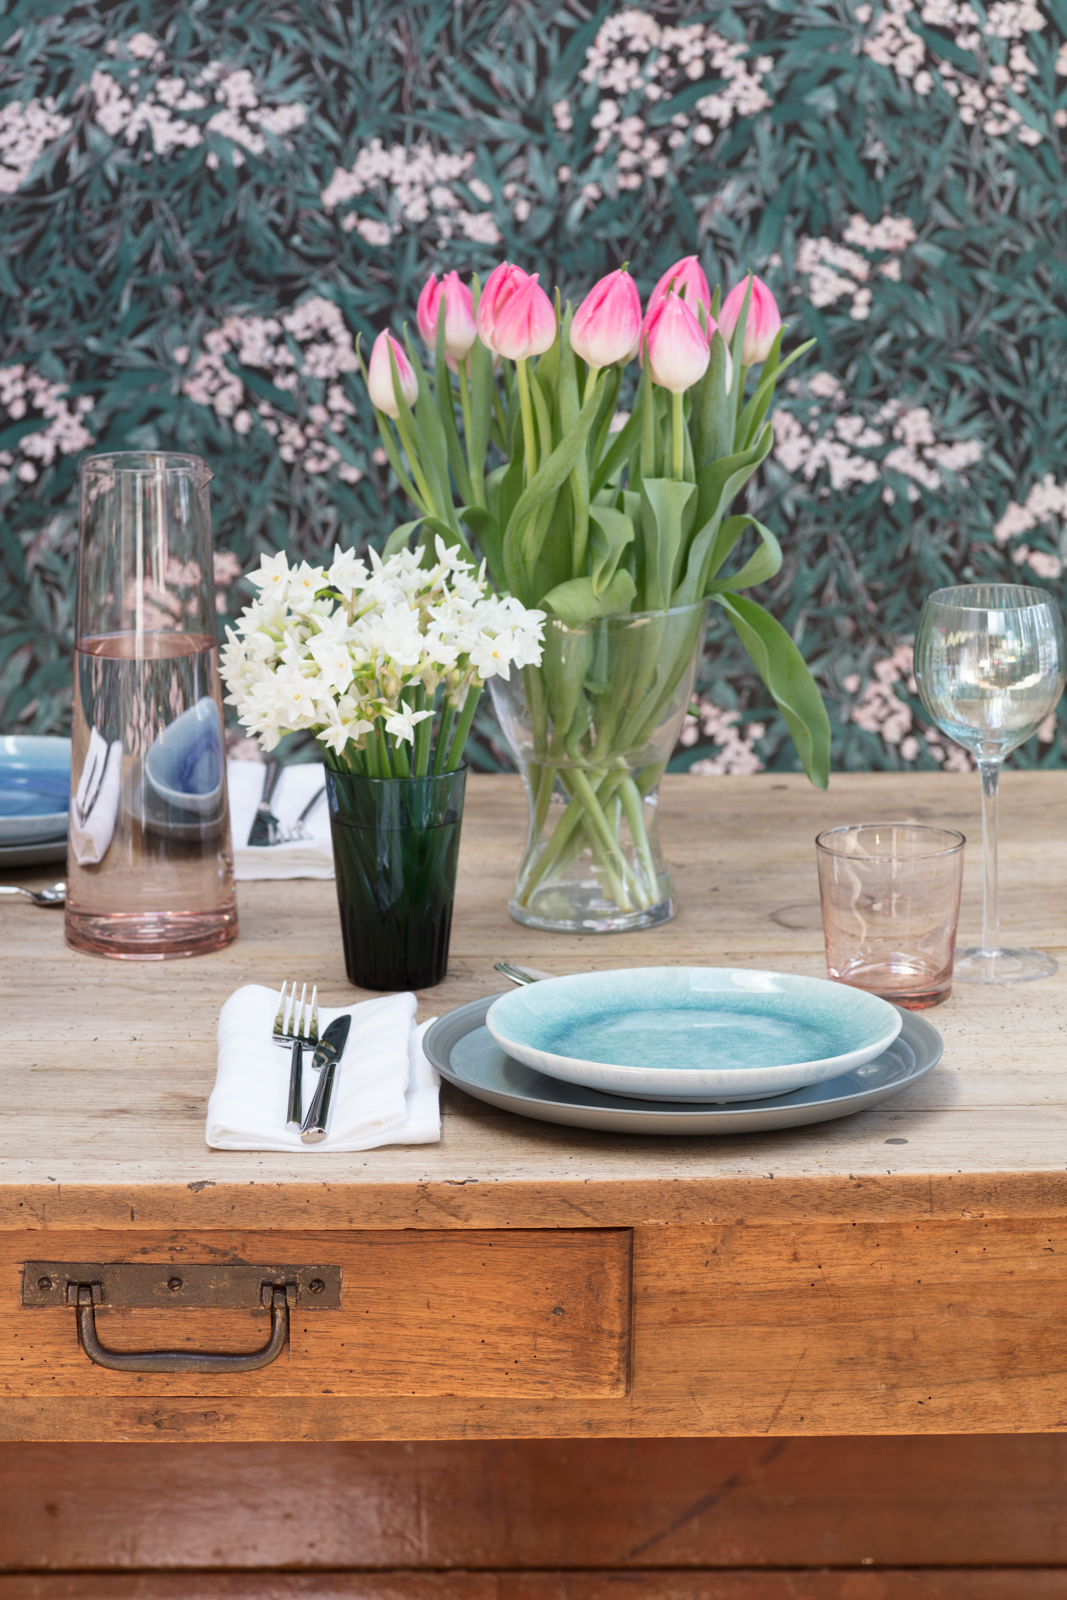 Pink tulips and white narcissi in The Pink House